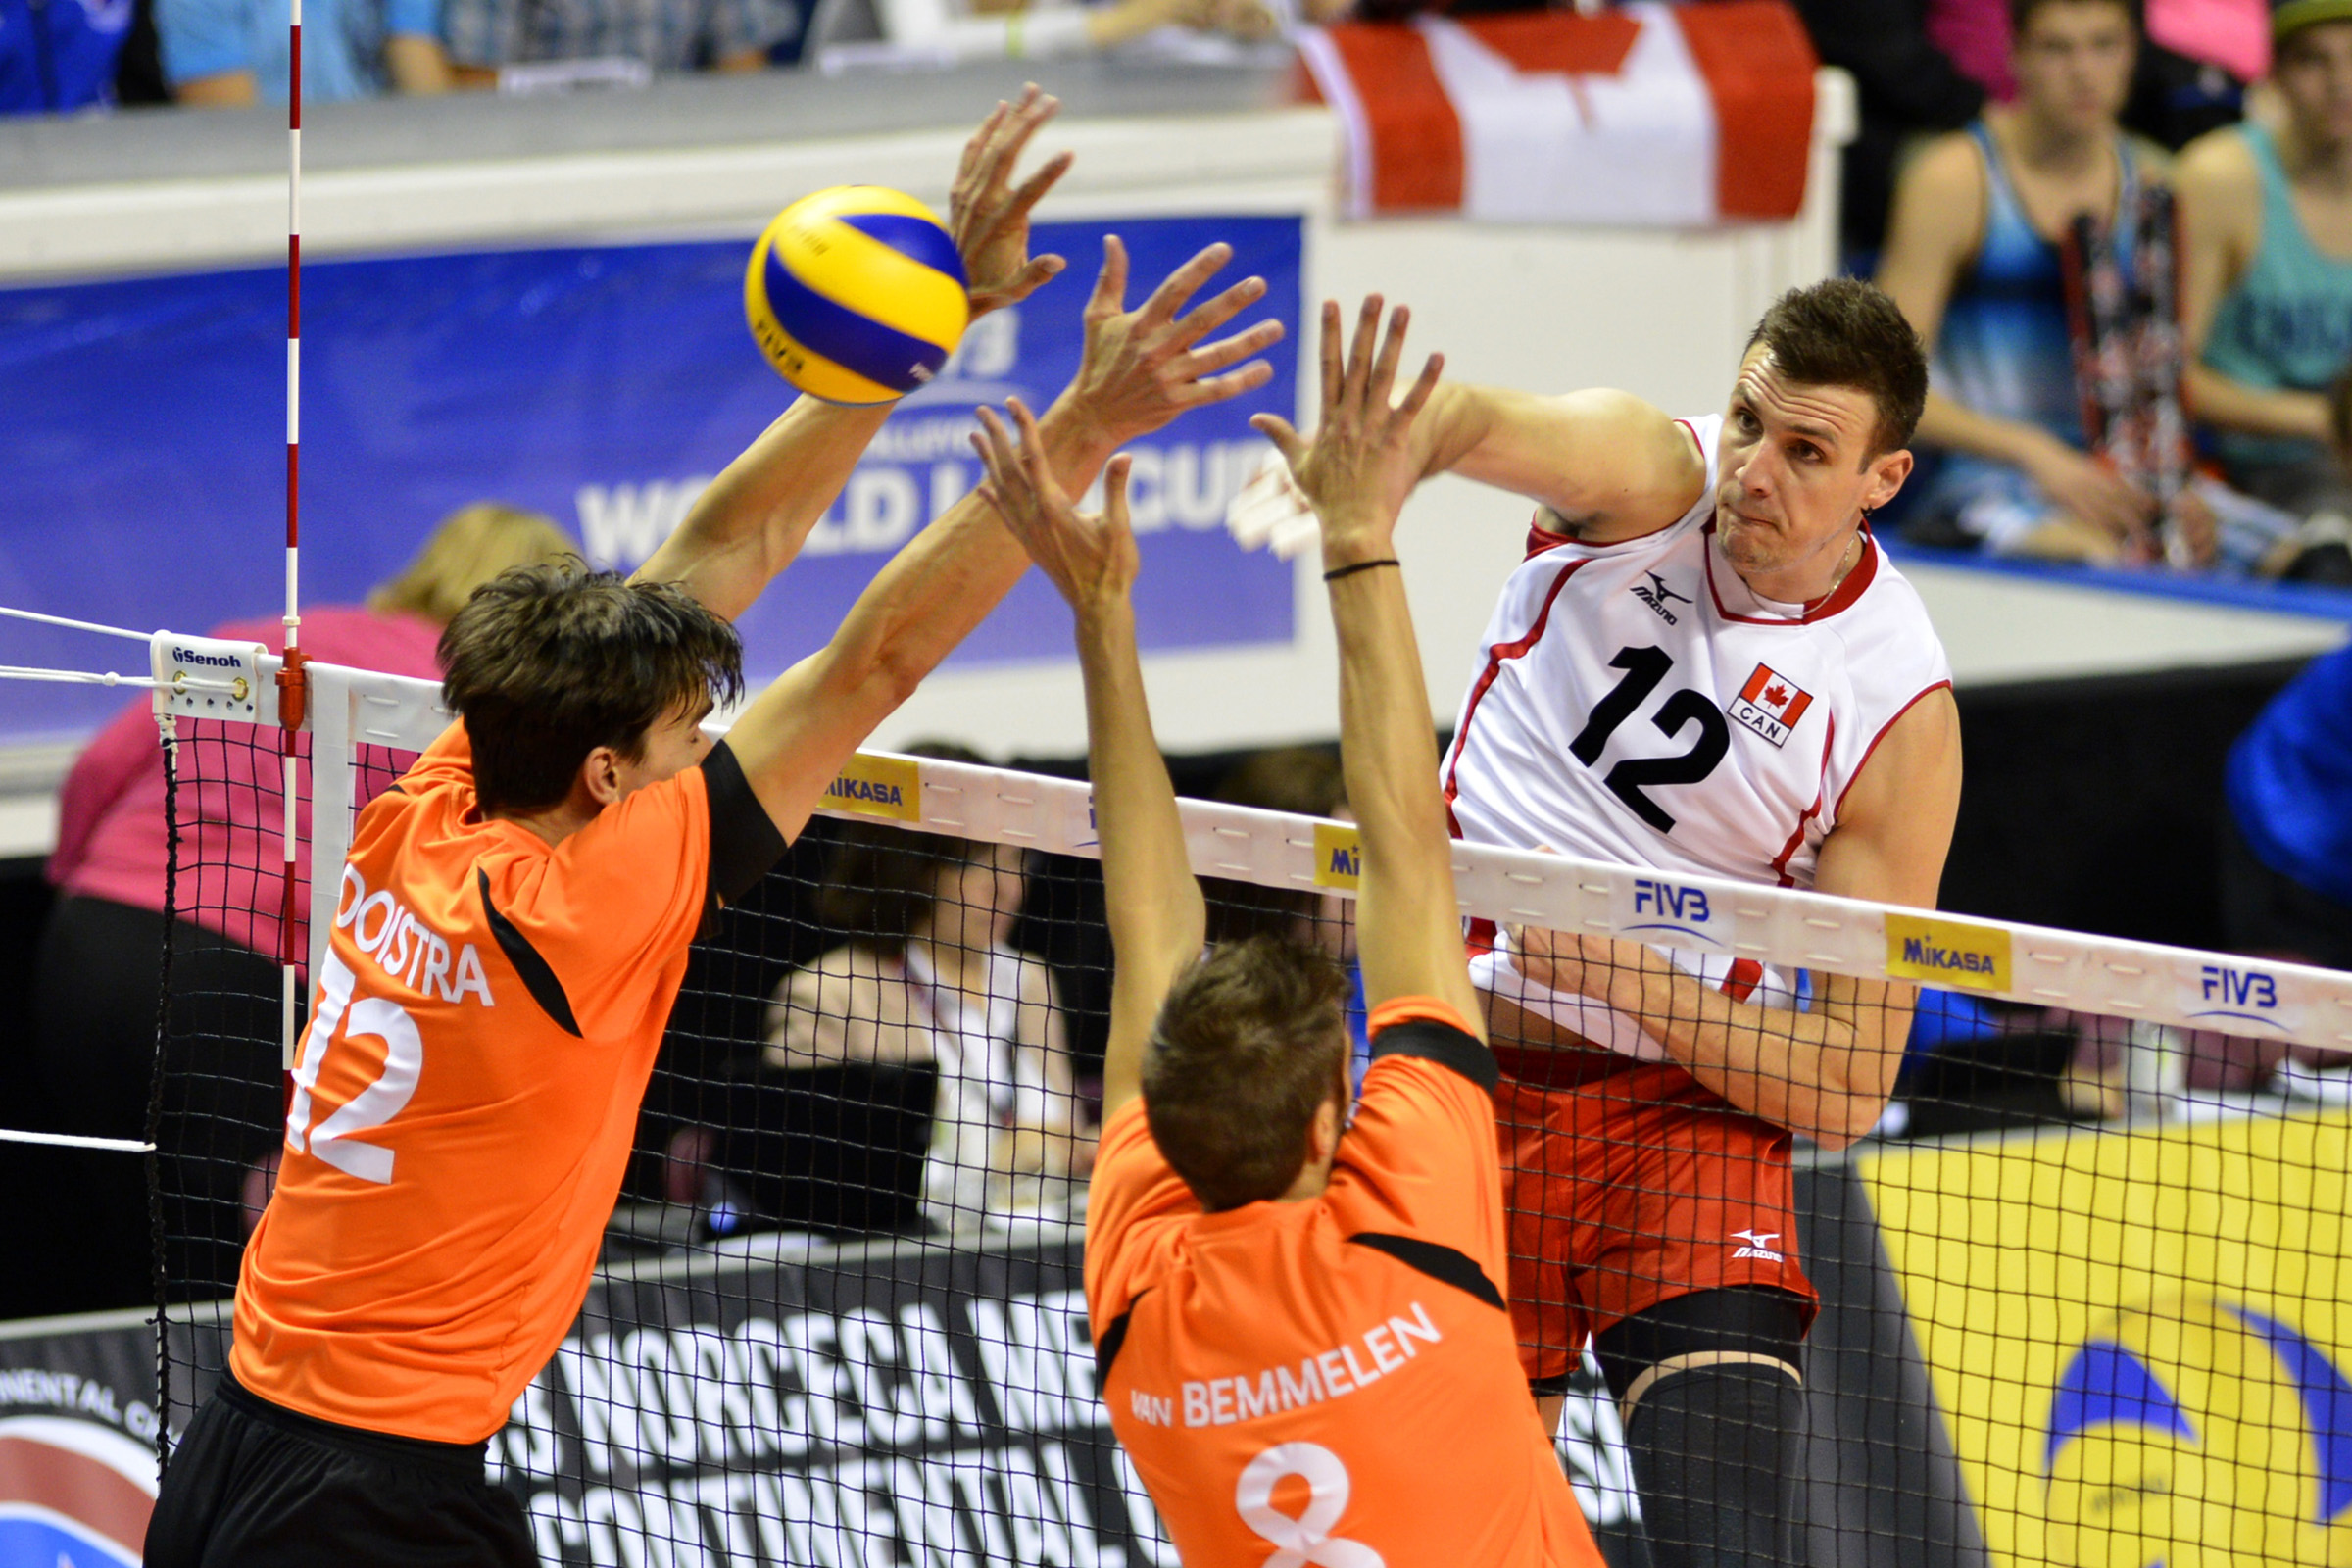 Canadian Gavin Schmitt will not be playing in tonight's FIVB World League match against Portugal. Schmitt leads Canada and is third in World League scoring with 54 points through three matches